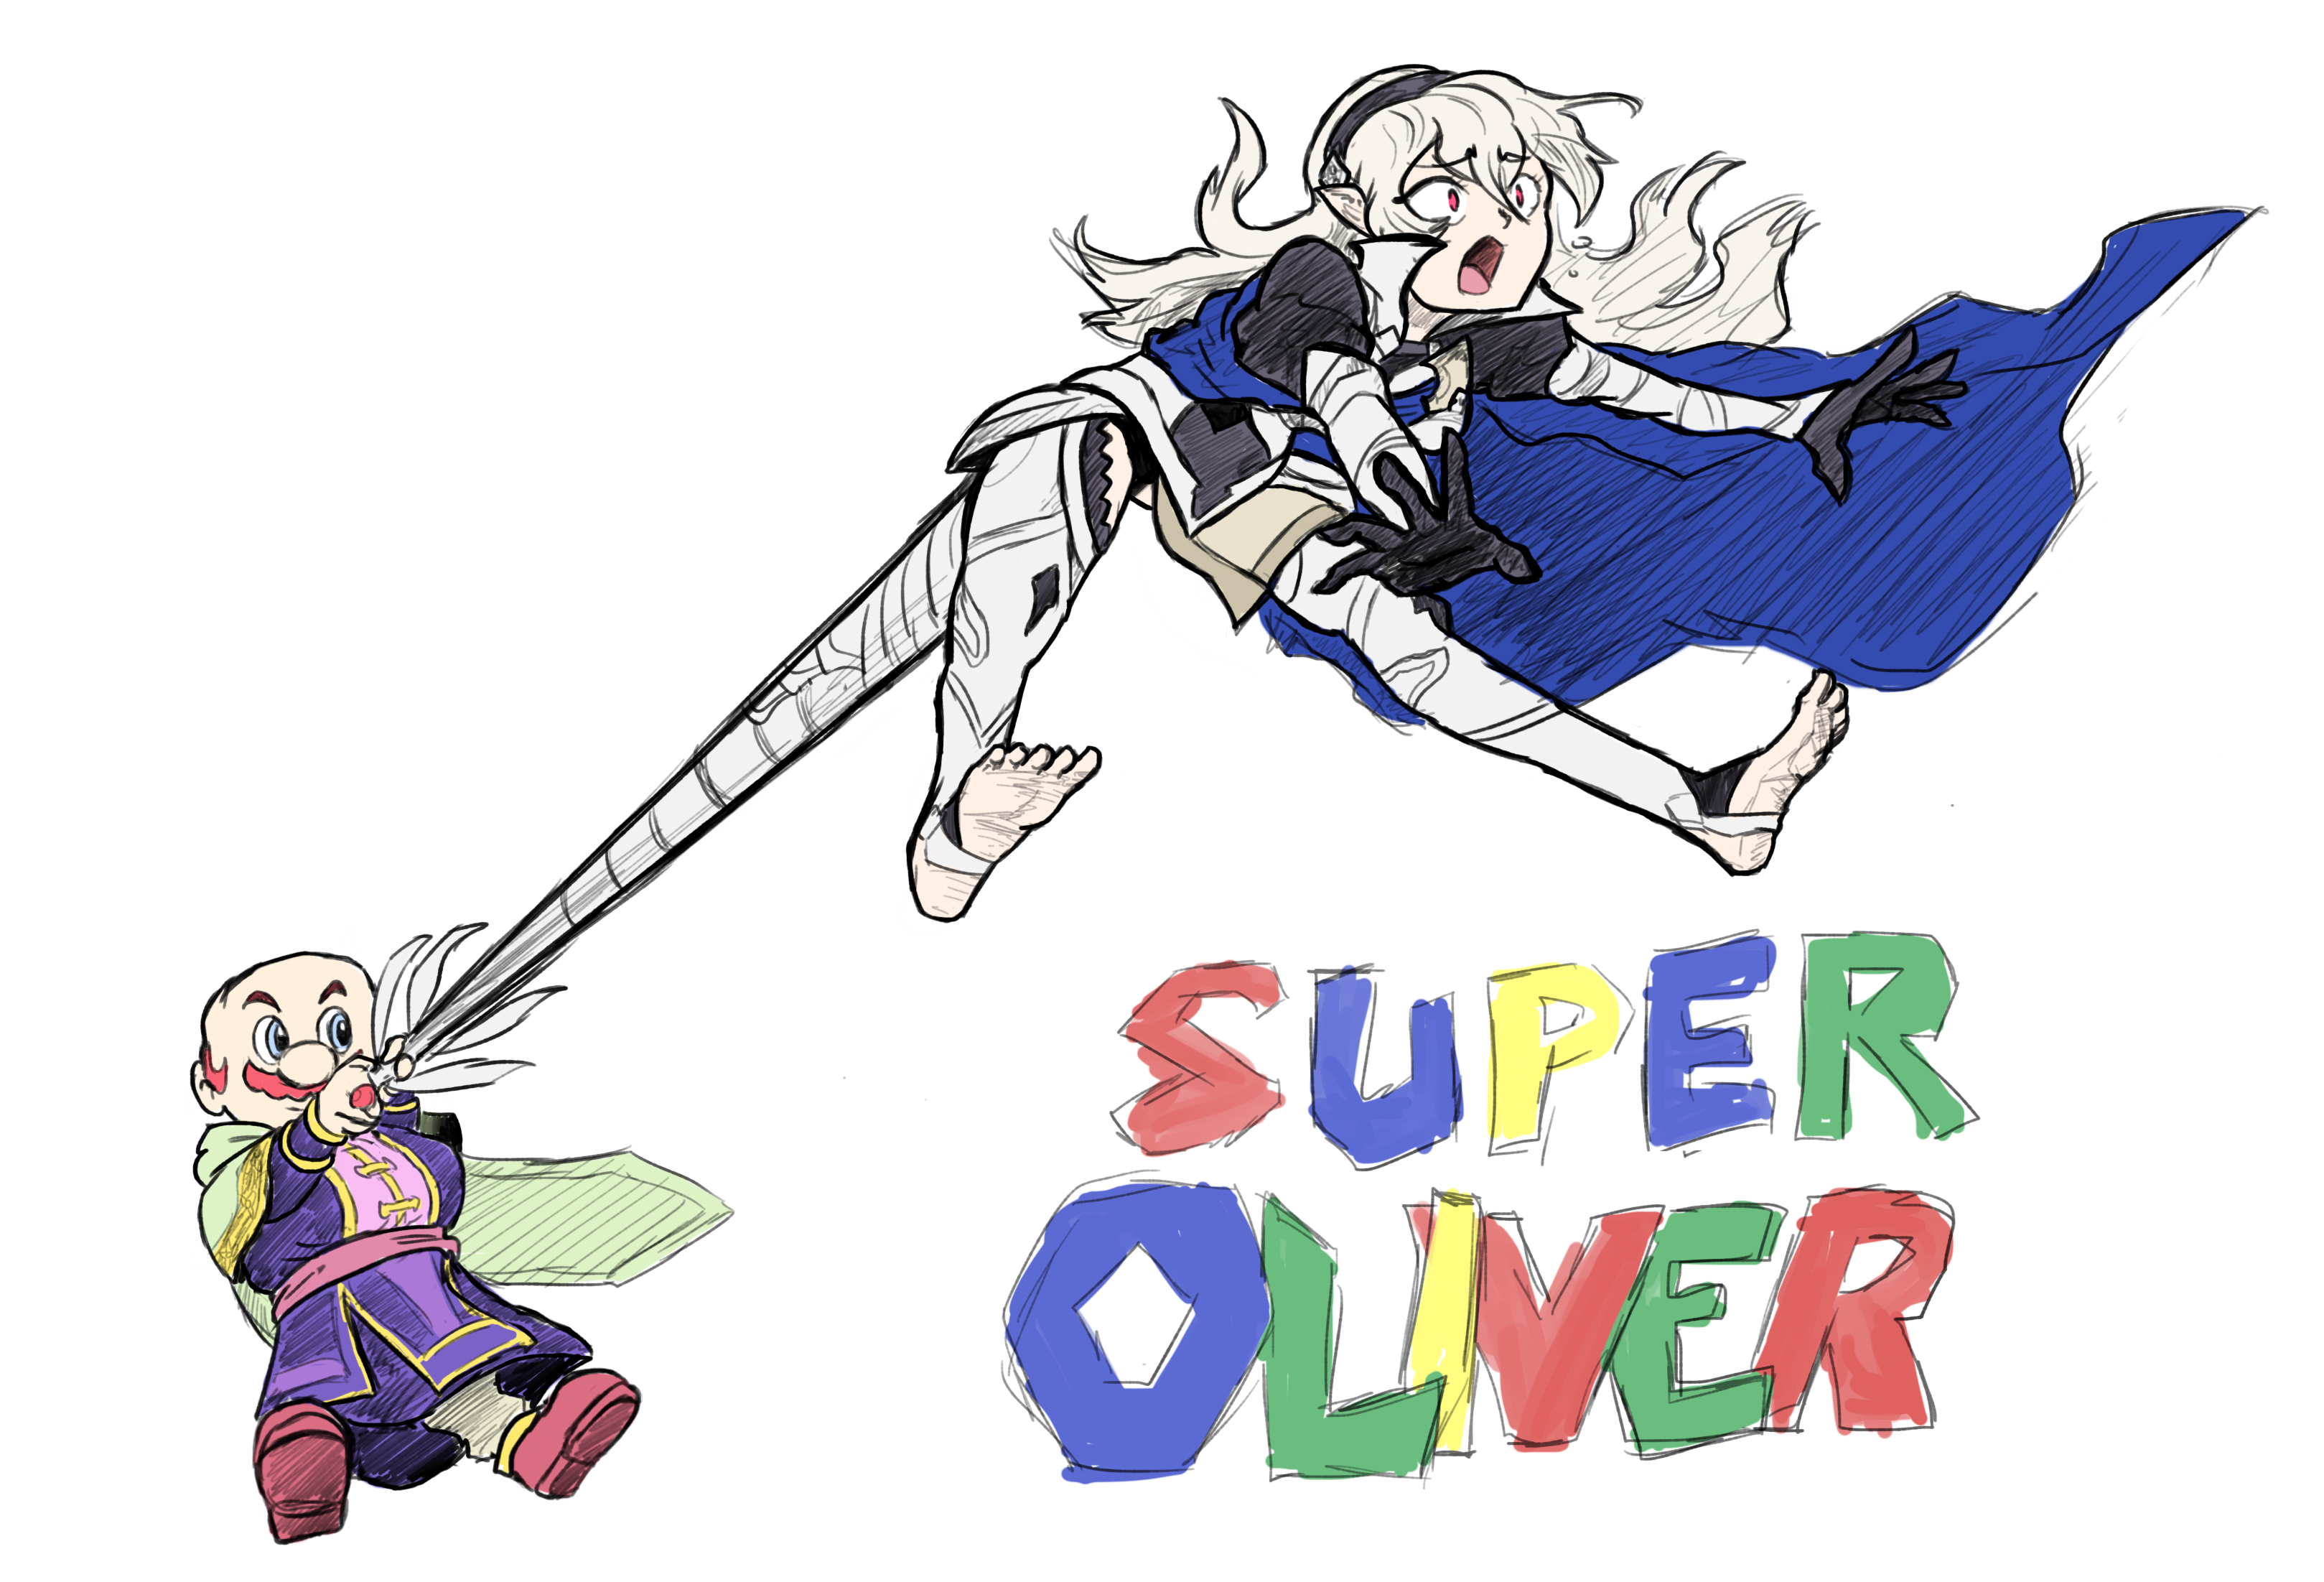 R Fireemblemheroes Super Oliver In 2020 Fire Emblem Fire Emblem Heroes Super For help with gambling problems and addictions, try starting here. fire emblem fire emblem heroes super